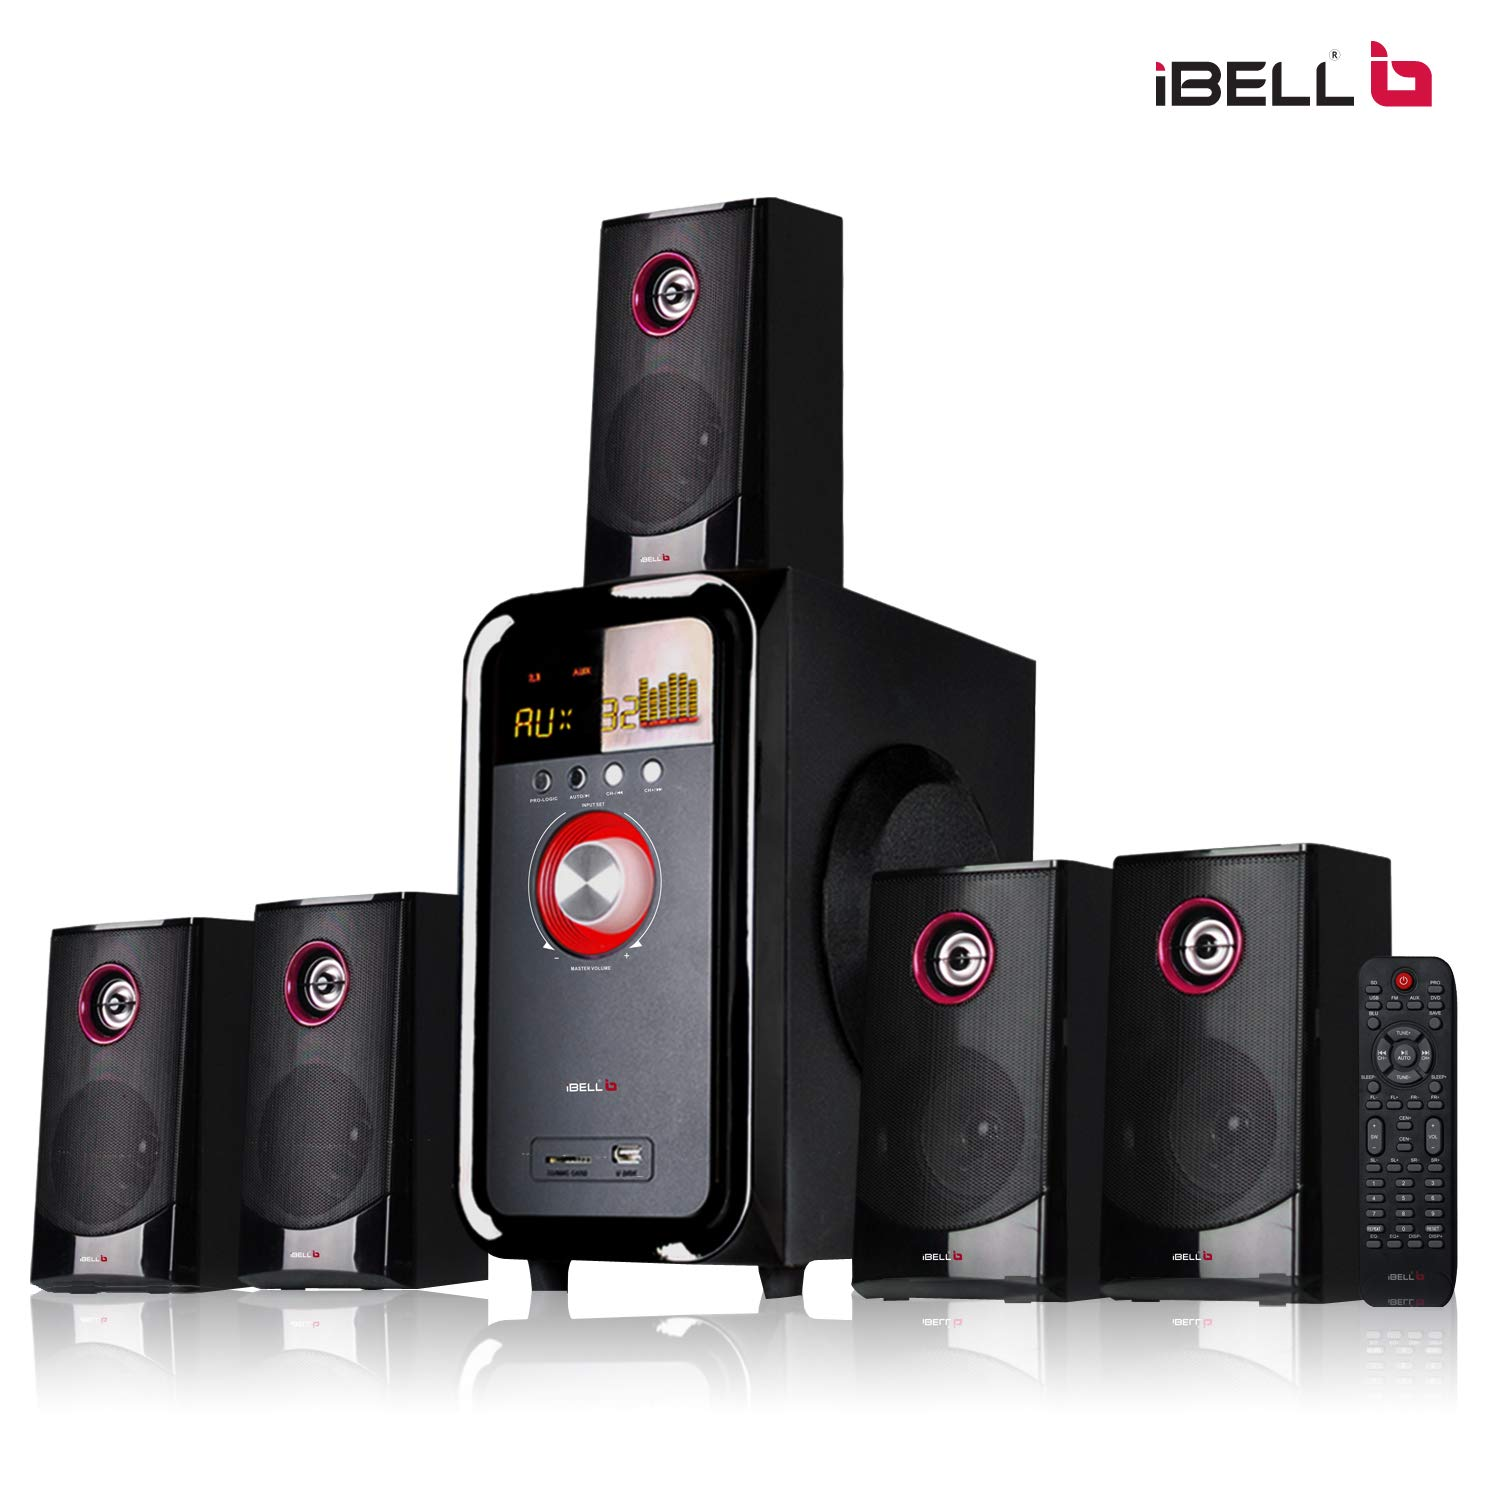 a5bf89acd89 iBELL IBL2079DLX 5.1 Home Theater Speaker Multimedia with FM Stereo ...